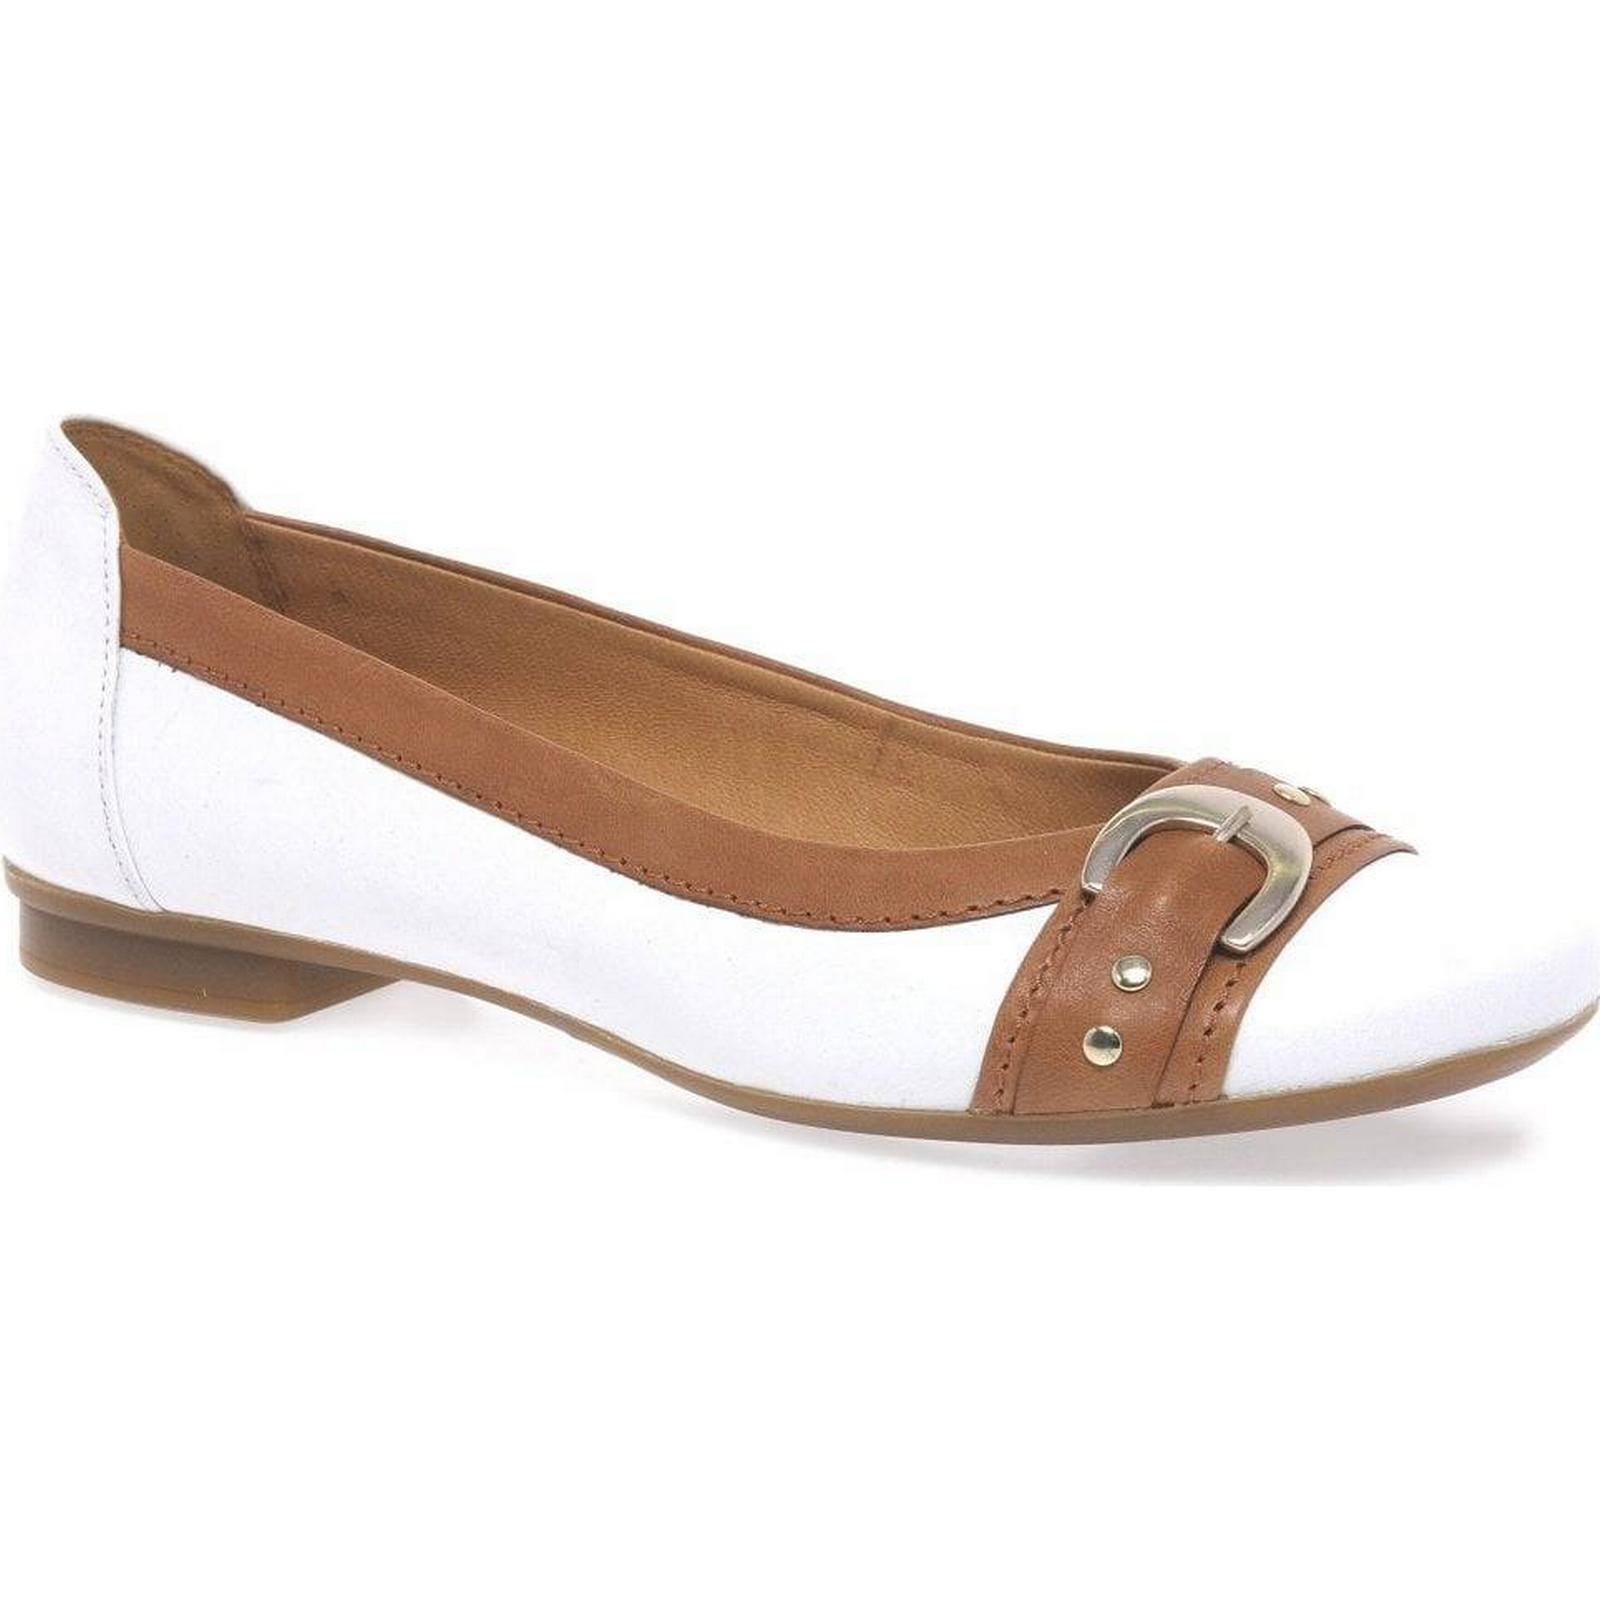 Gabor Pumps Indiana Womens Casual Pumps Gabor Colour: White/Caramel, Size: 9 1f72d0